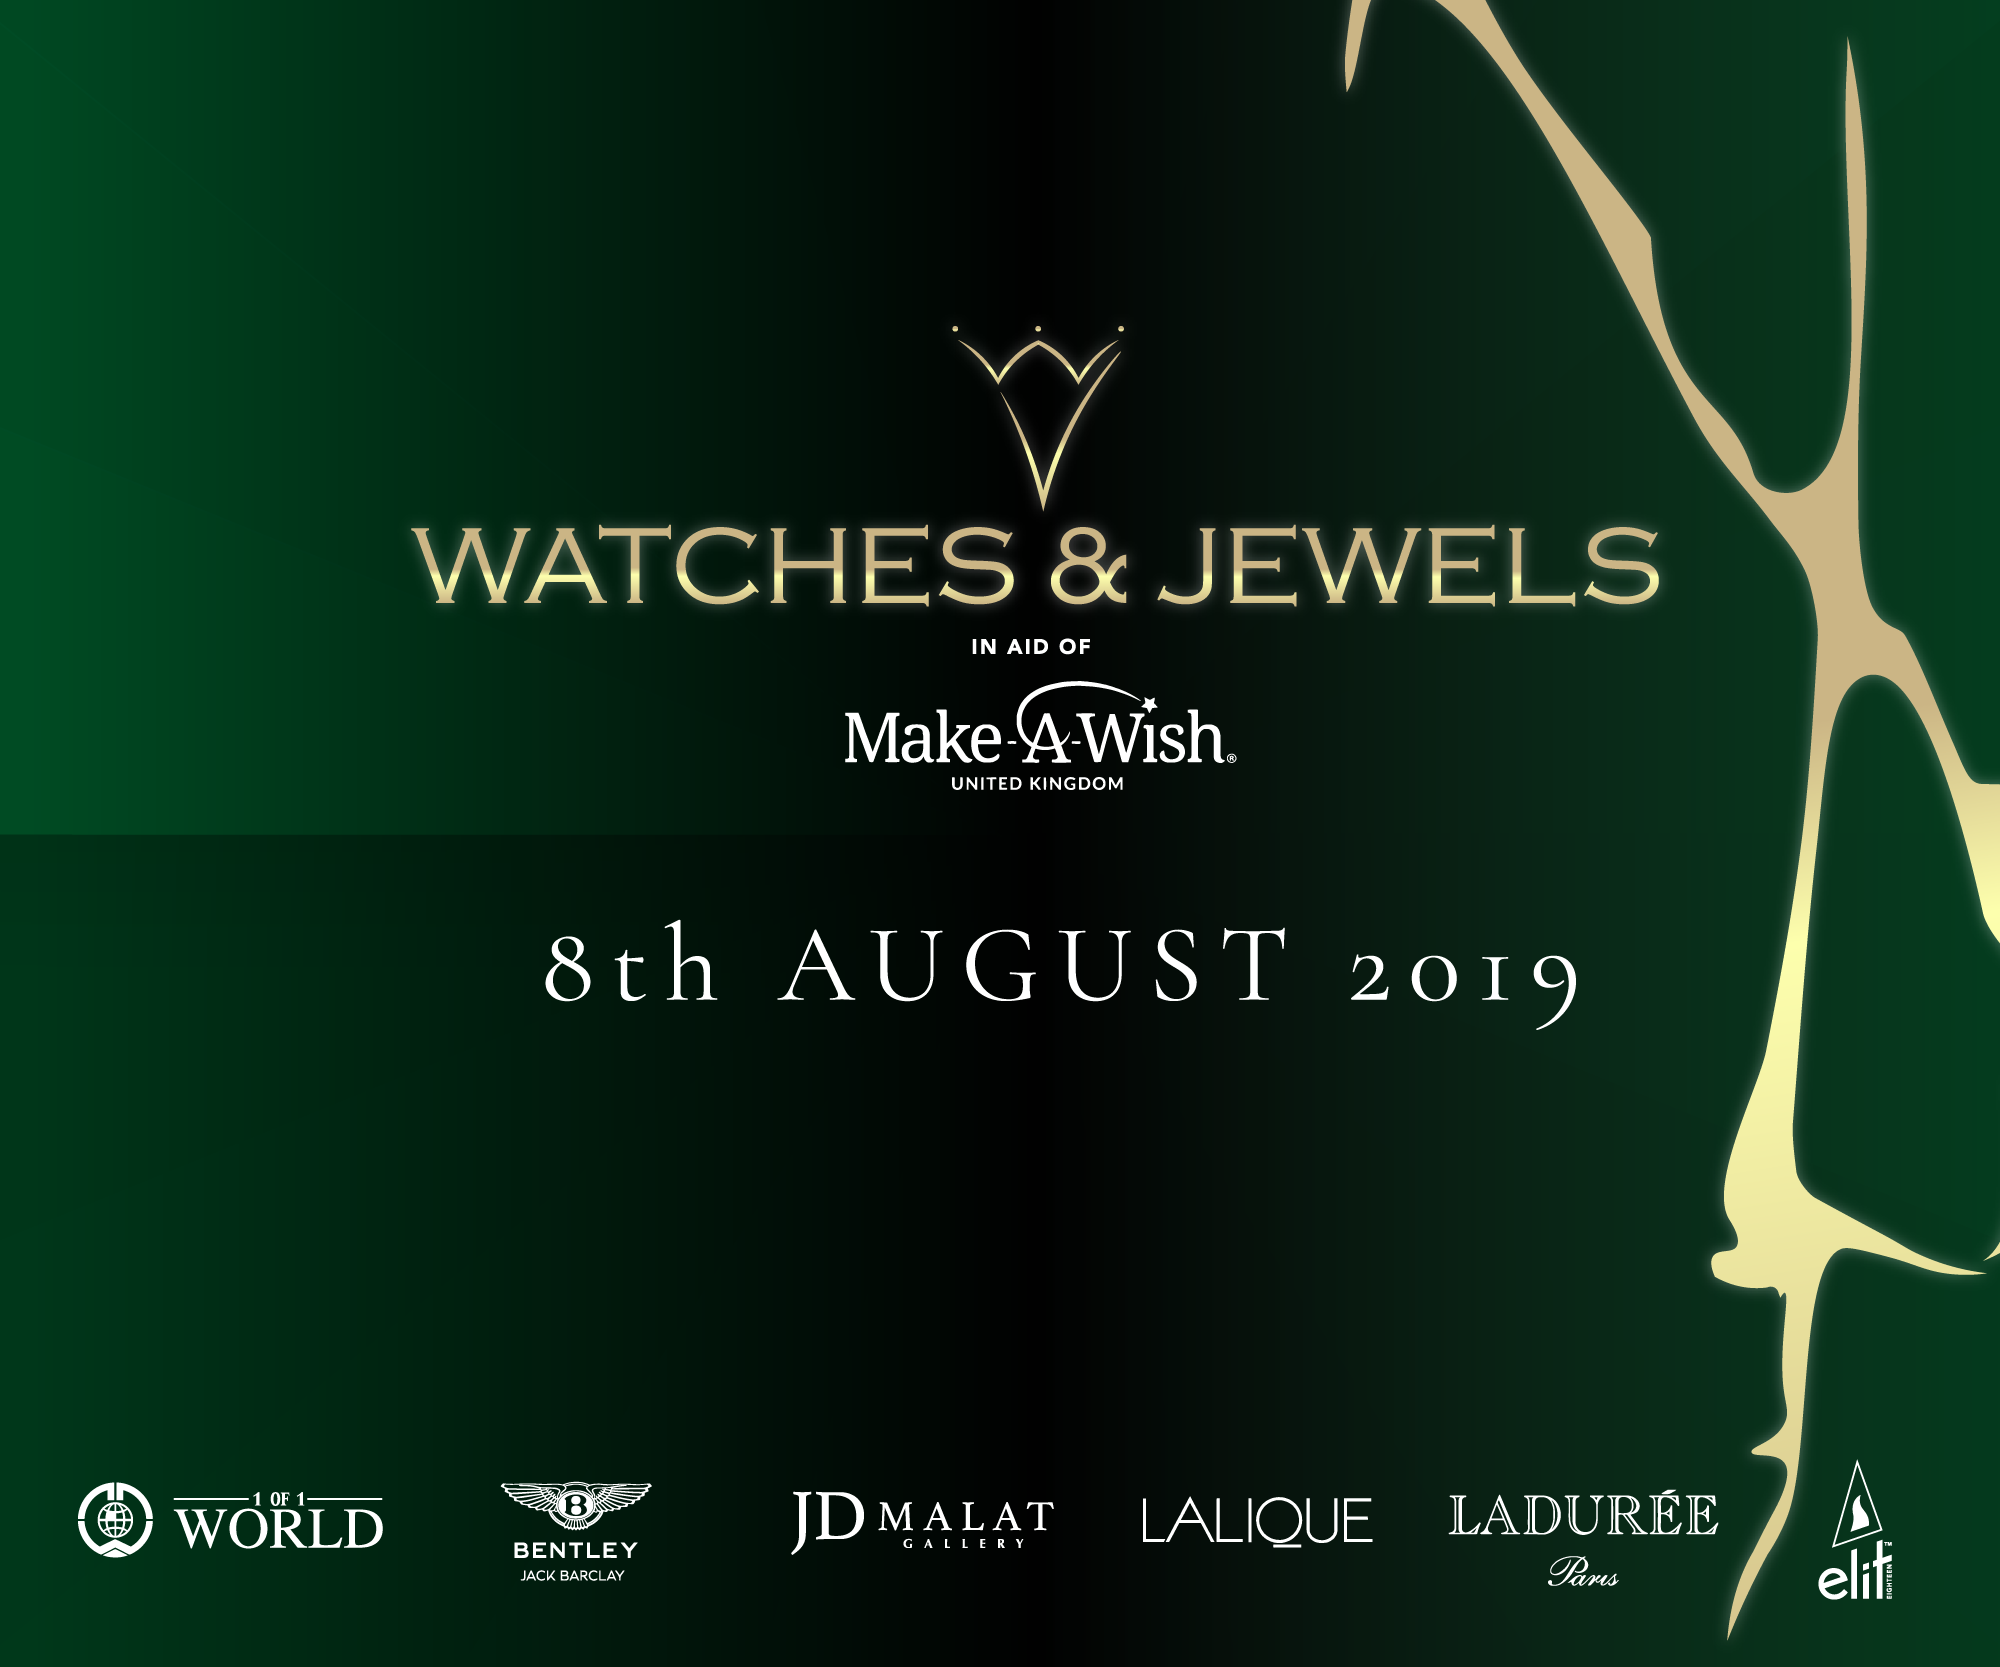 https://www.watchesandjewels.co.uk/